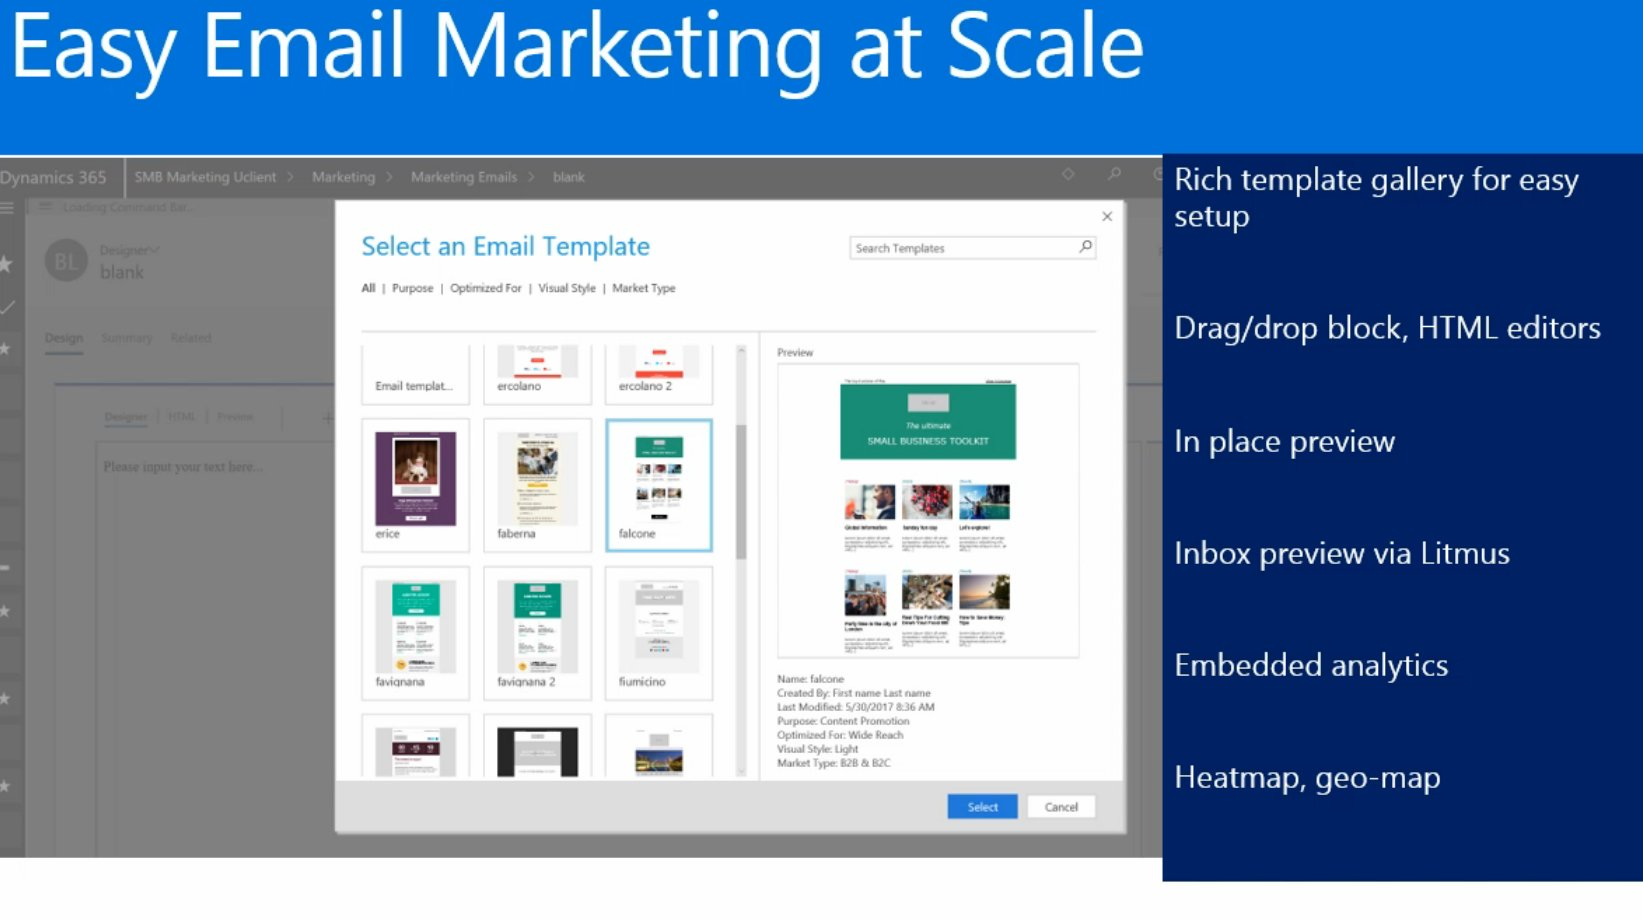 60+ marketing email templates will be included with SMB marketing app #msdyn365 https://t.co/pife5liOzi